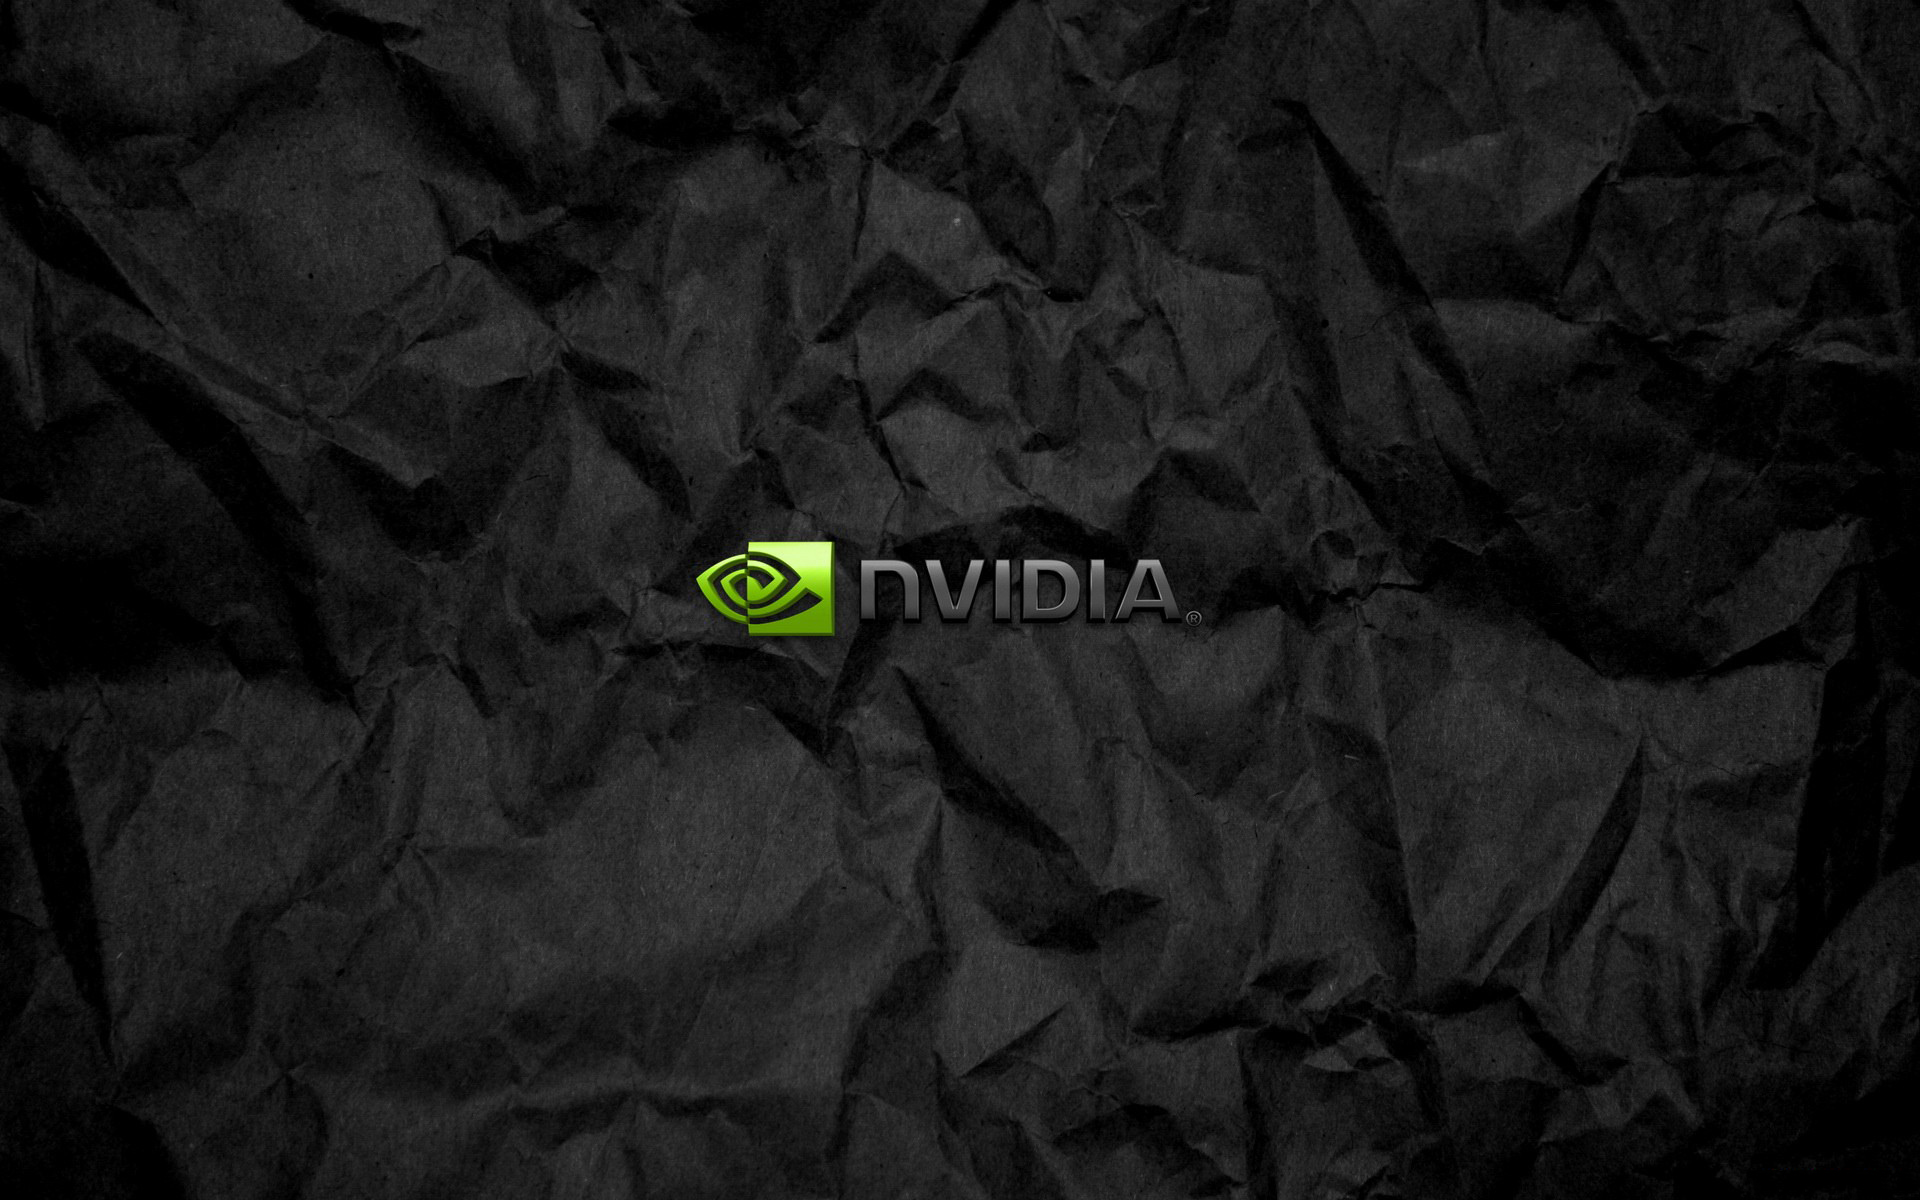 Nvidia Wallpapers 24